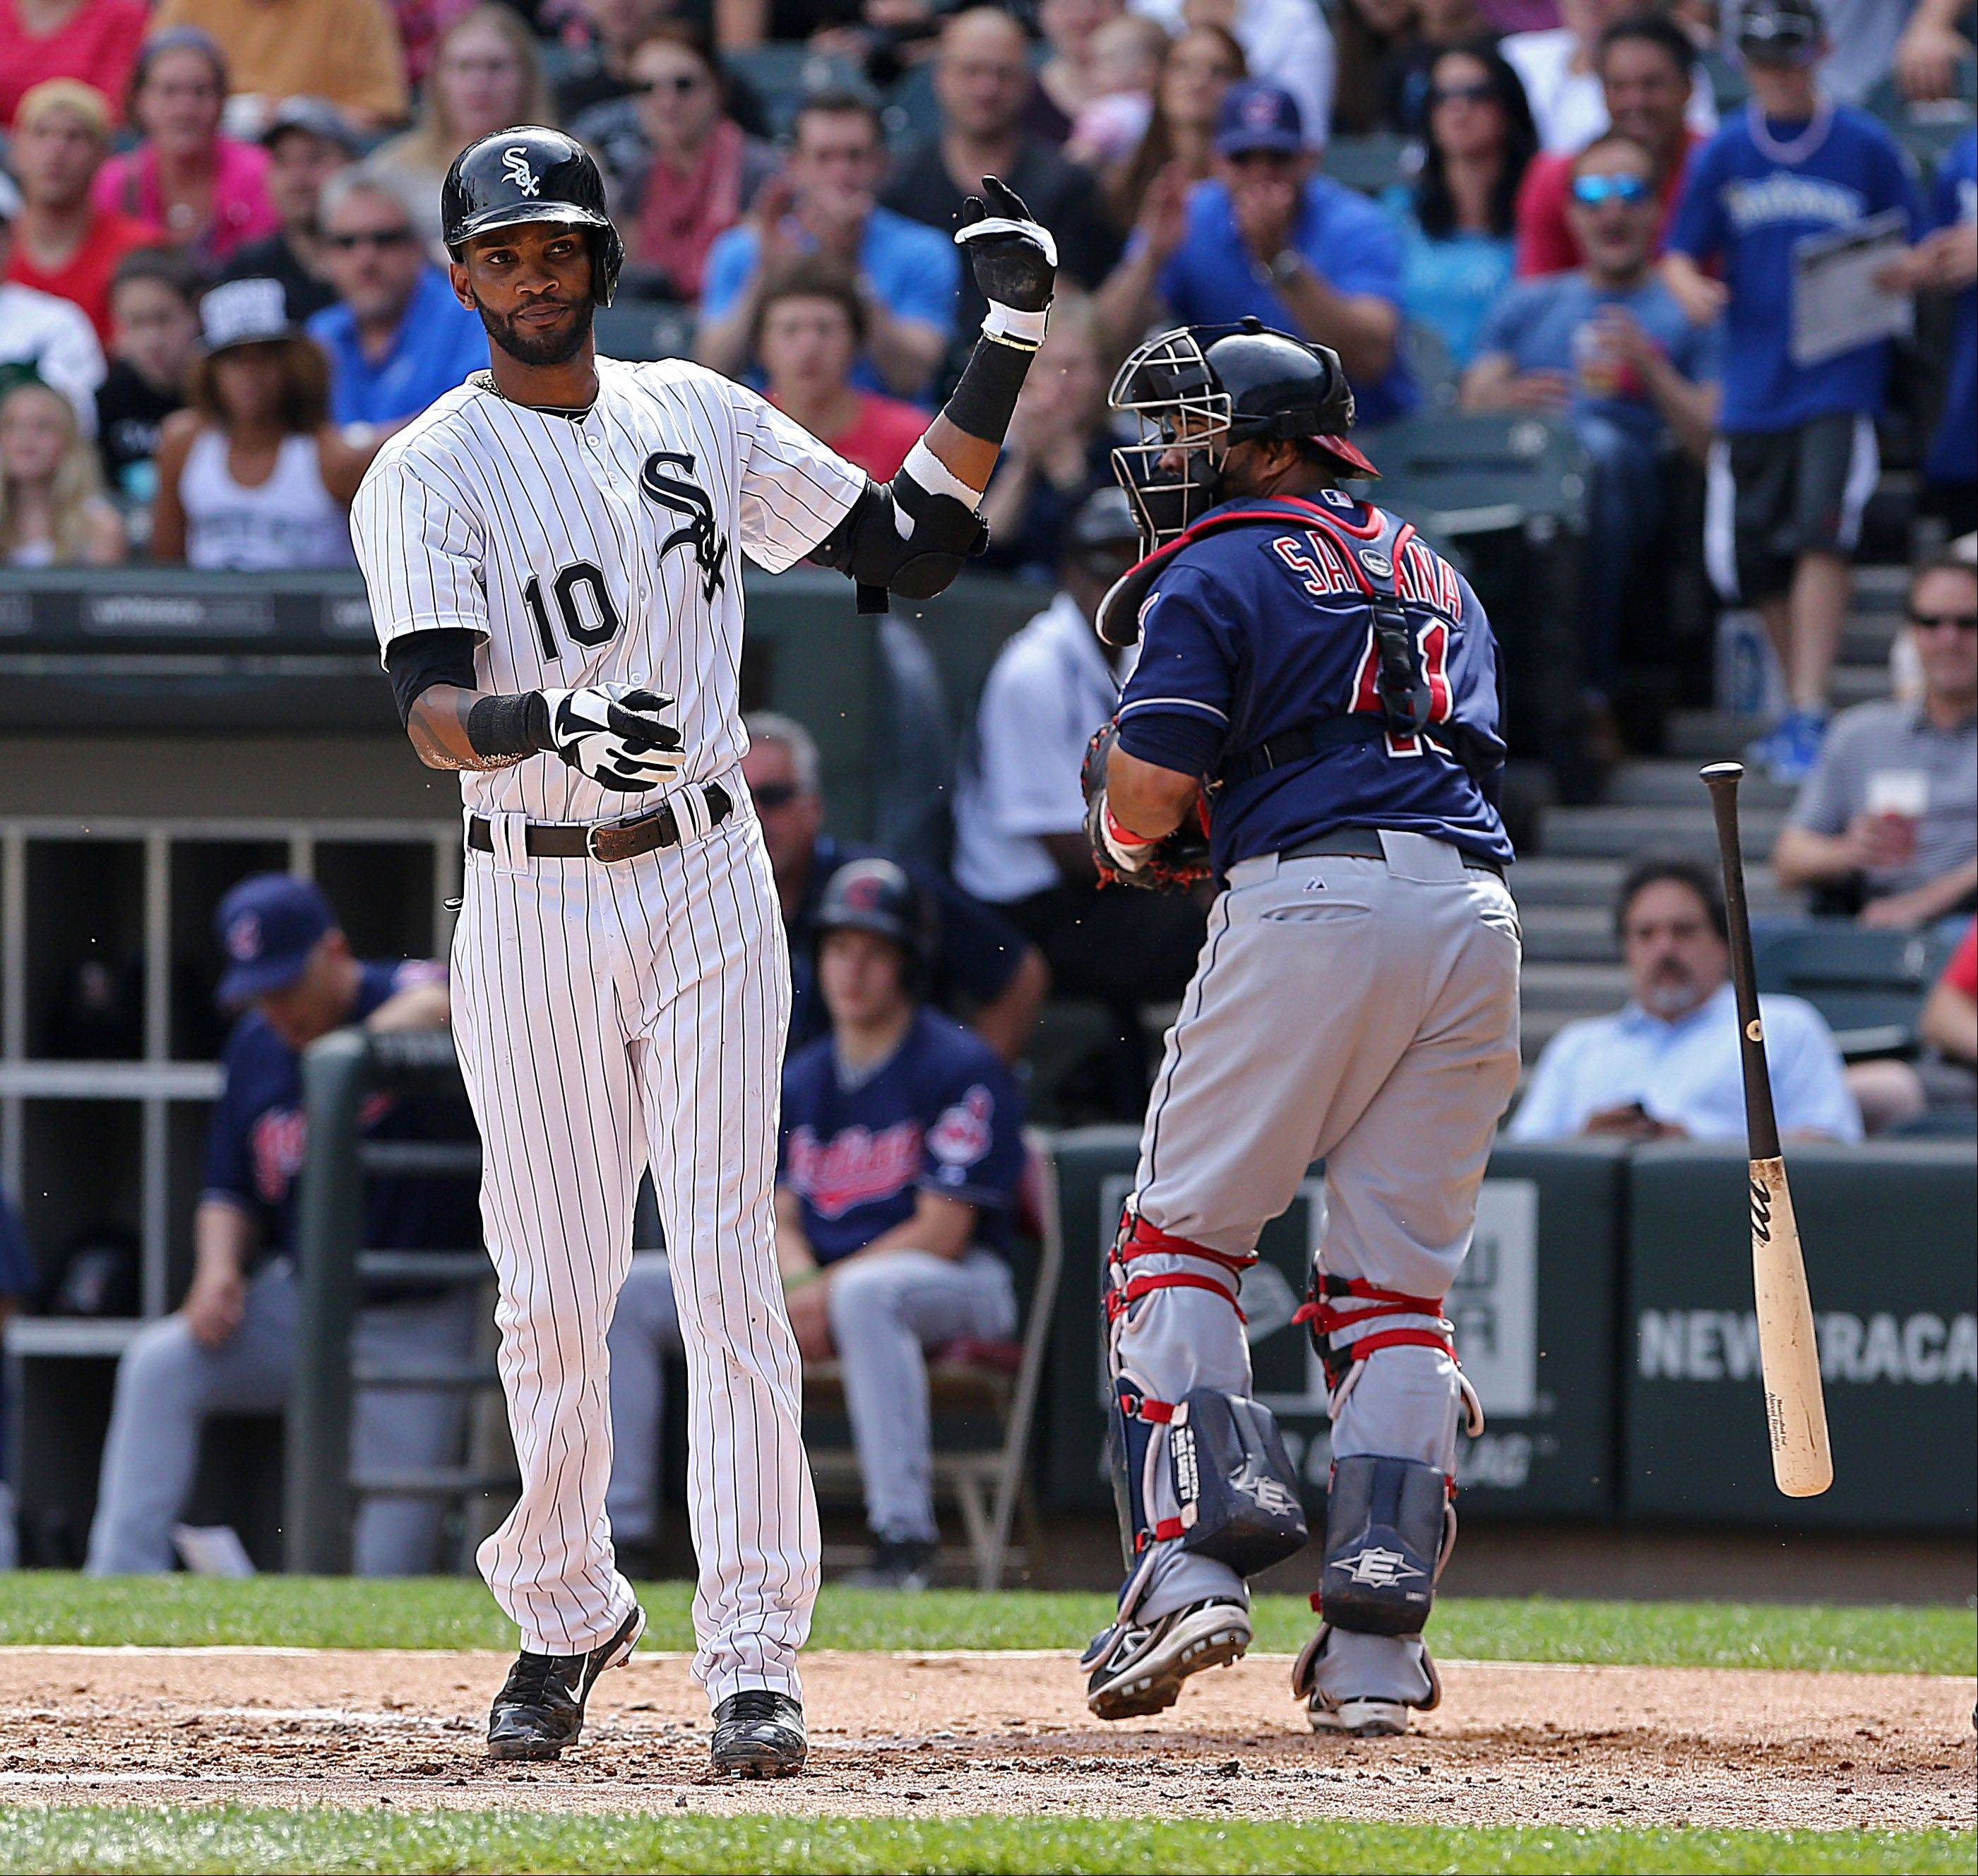 Alexei Ramirez flips his bat after striking out with two men on base to end the second inning Saturday at U.S. Cellular Field.